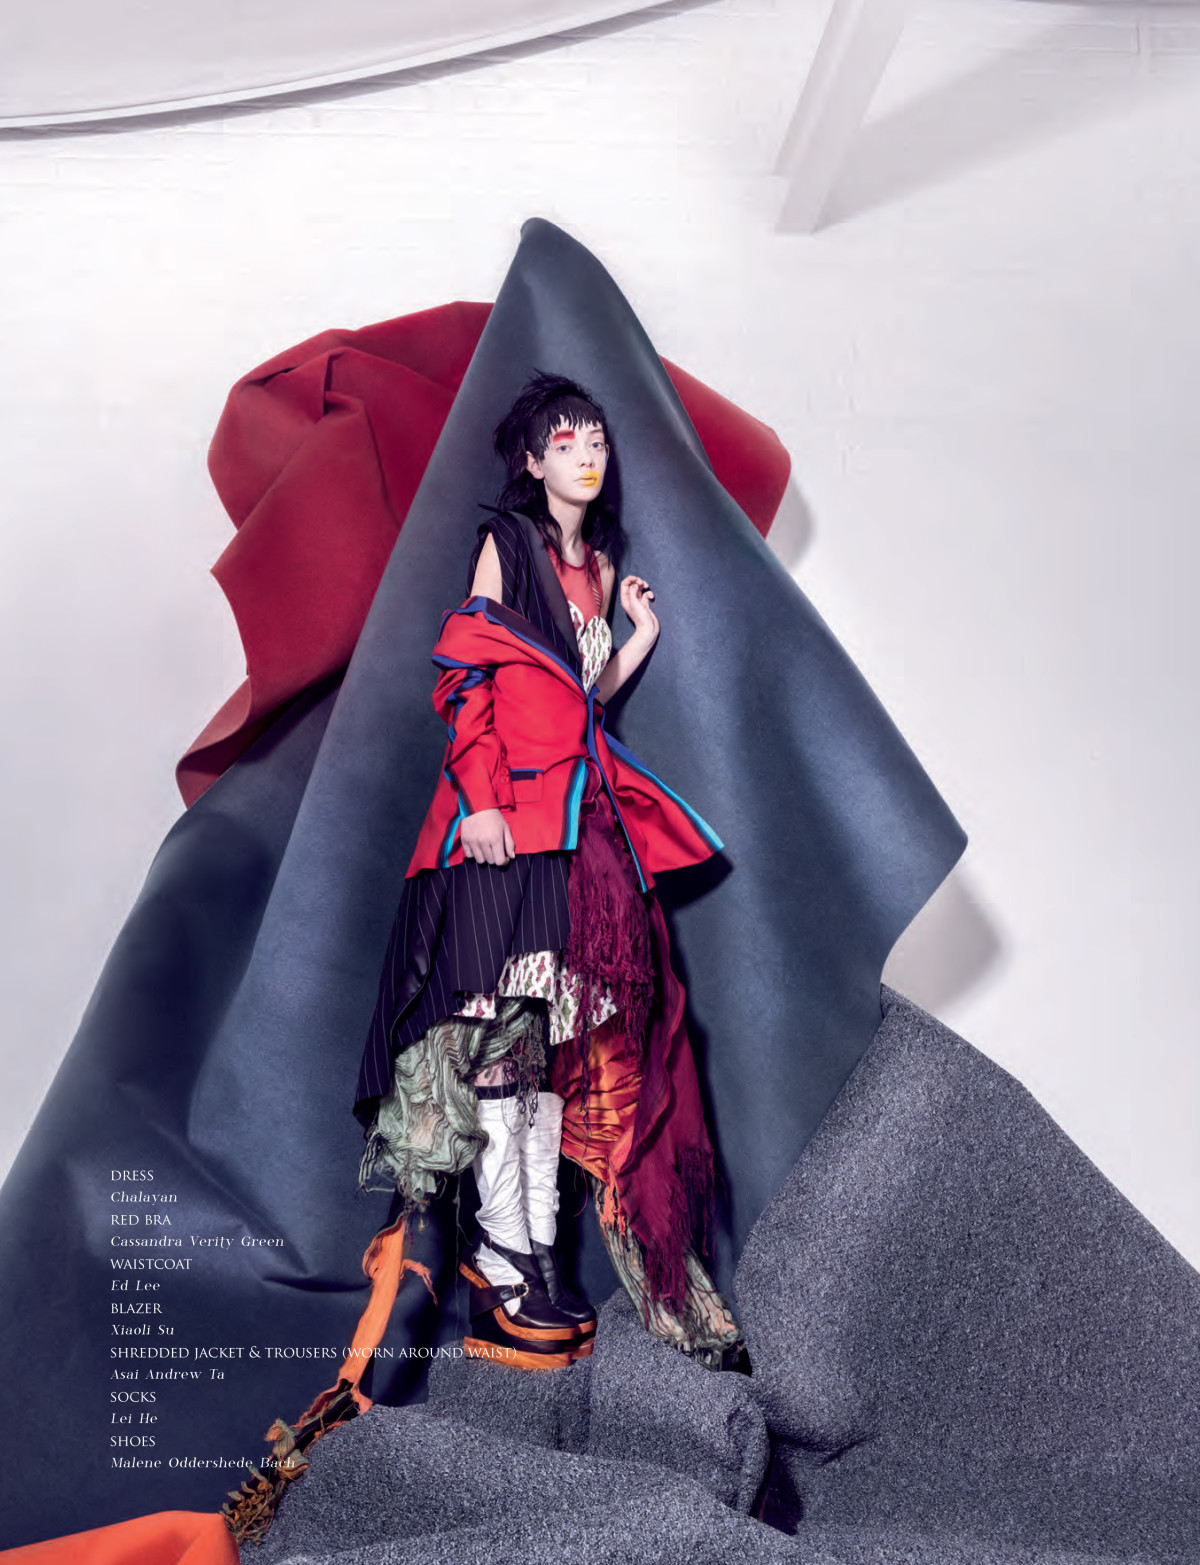 Abundance,Vision China Magazine, Madame Peripetie, Leah Miligan, Graphic Makeup, Yellow Lip, Red Eyebrow, Polka dot